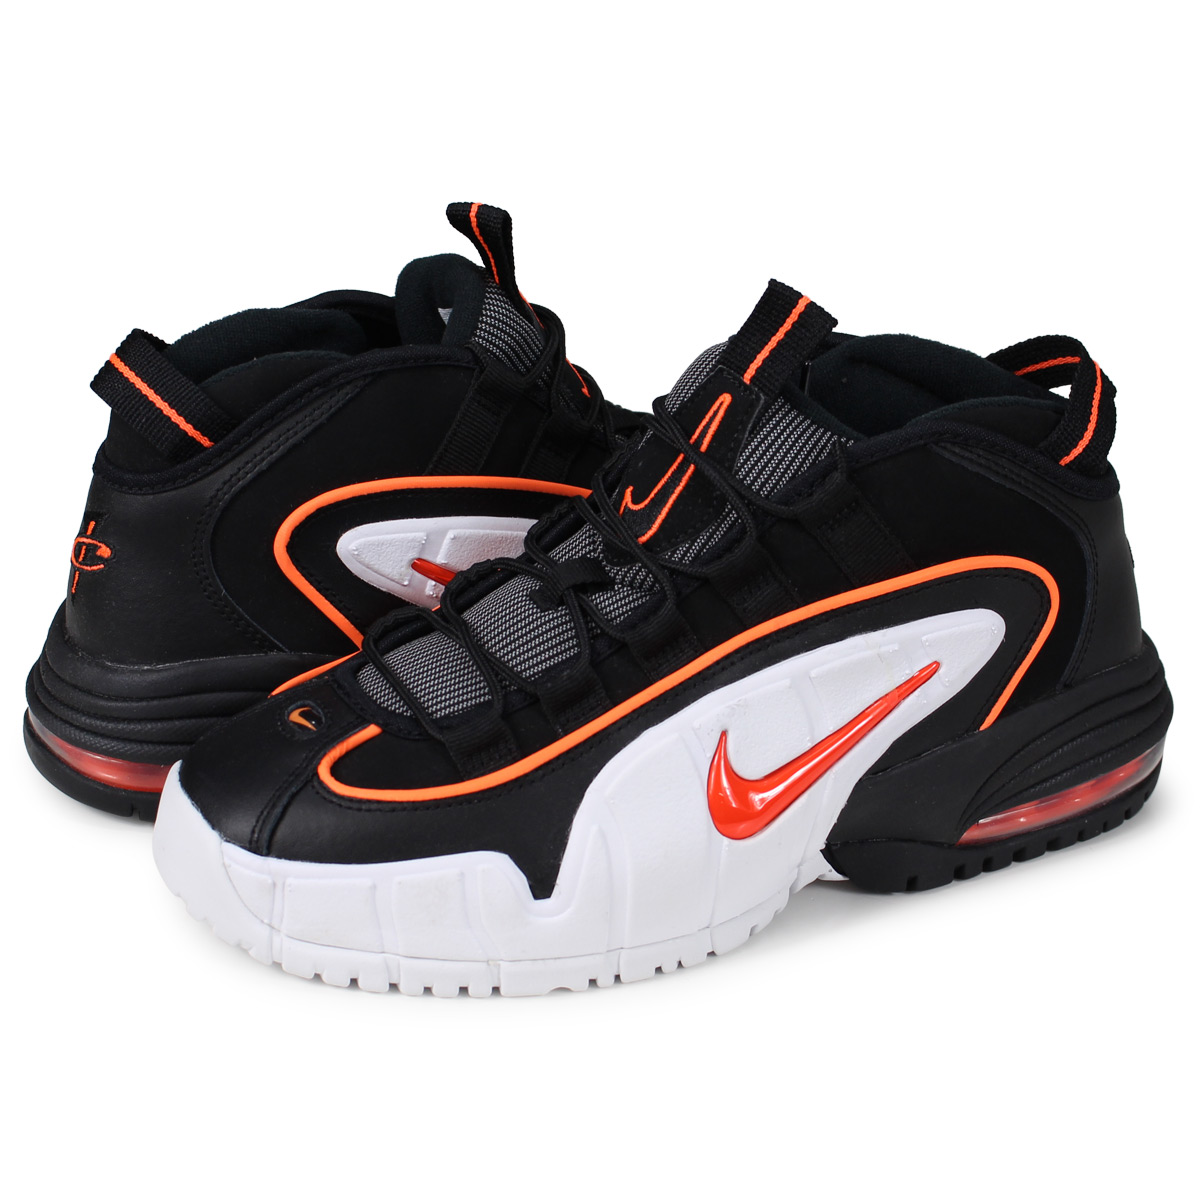 quality design 891a8 b0924  brand NIKE getting high popularity from sneakers freak